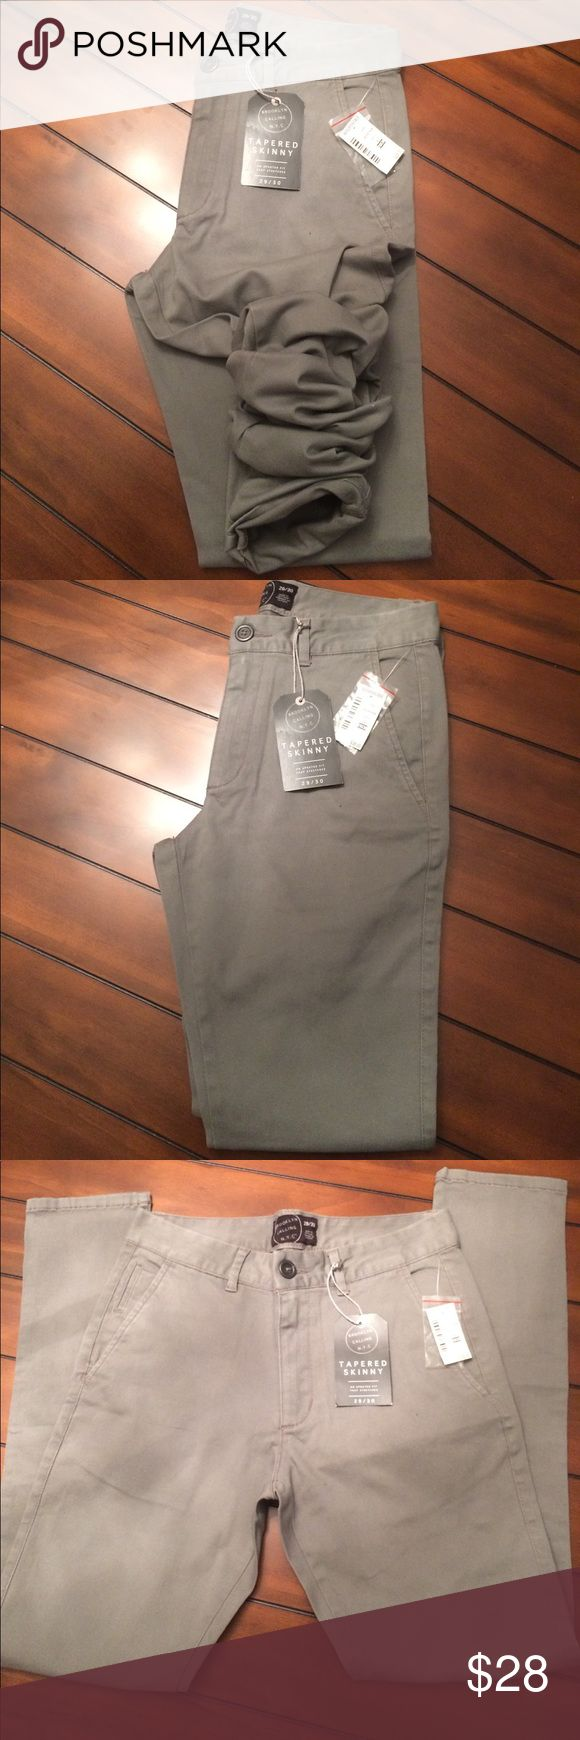 NWT Aeropostale Skinny Tapered Chinos 29x30 Solid Grey Brooklyn Calking Skinny Tapered Chino Pants Aeropostale Pants Chinos & Khakis